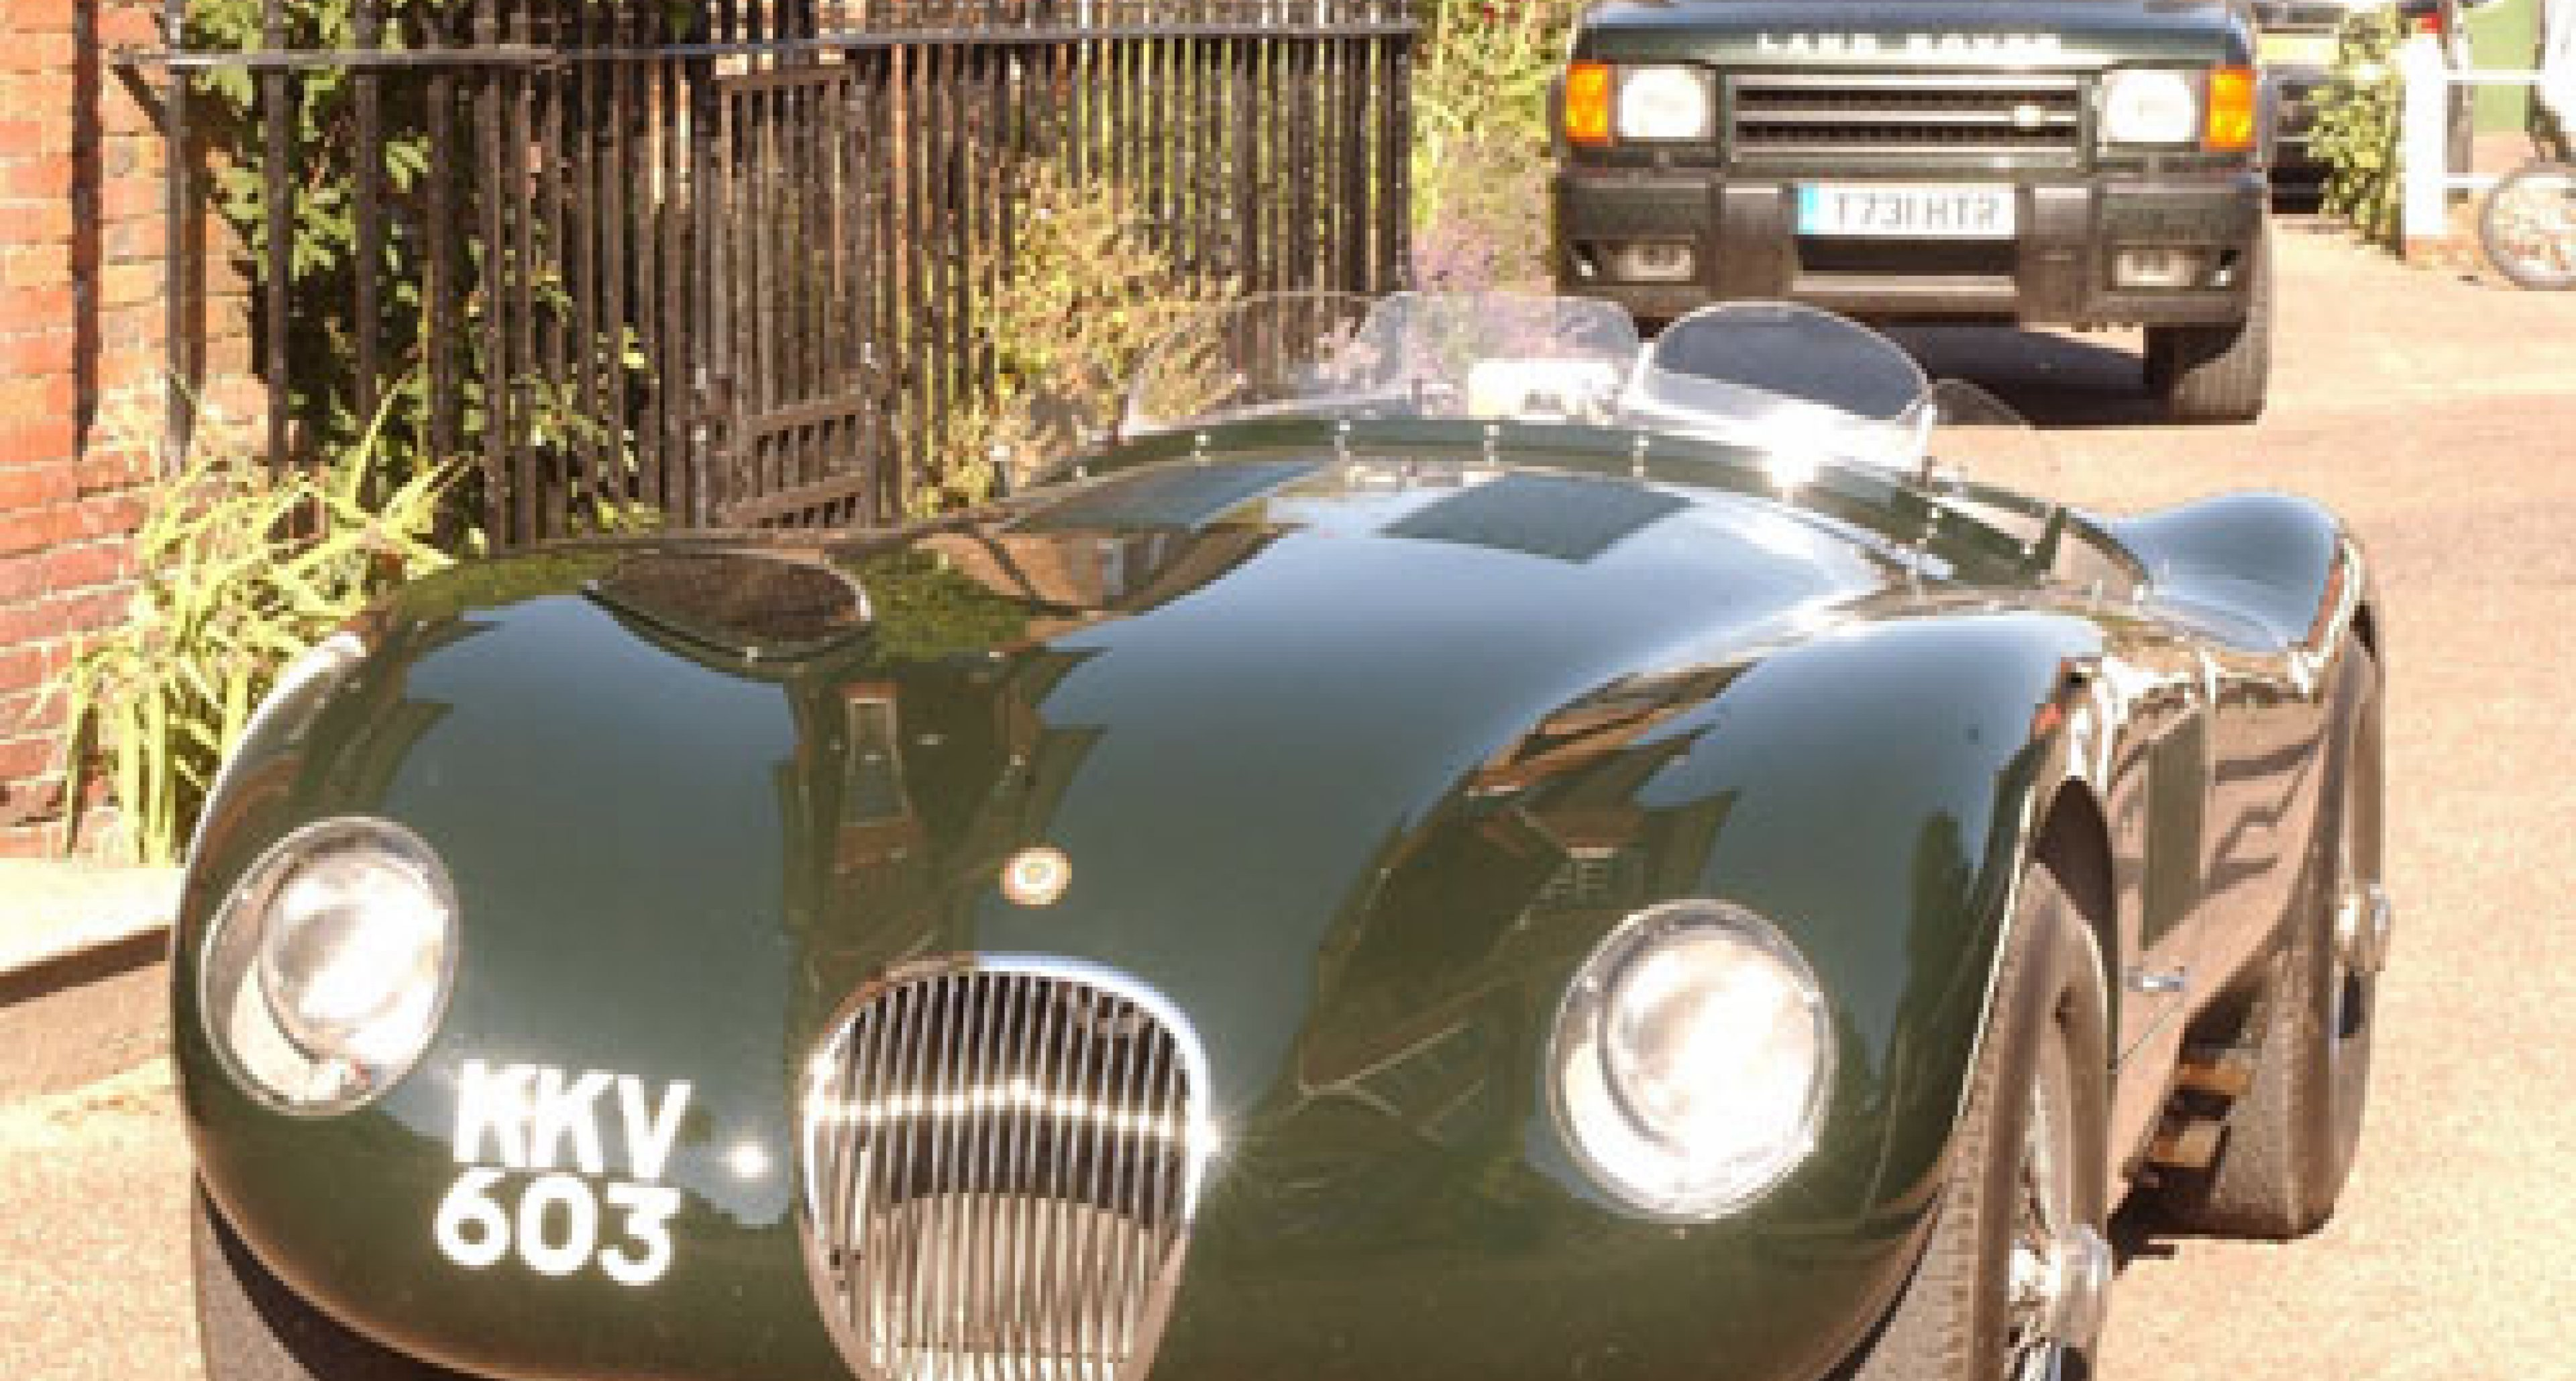 Racing Green Cars announce the world's most perfect reproduction C-Type Jaguar